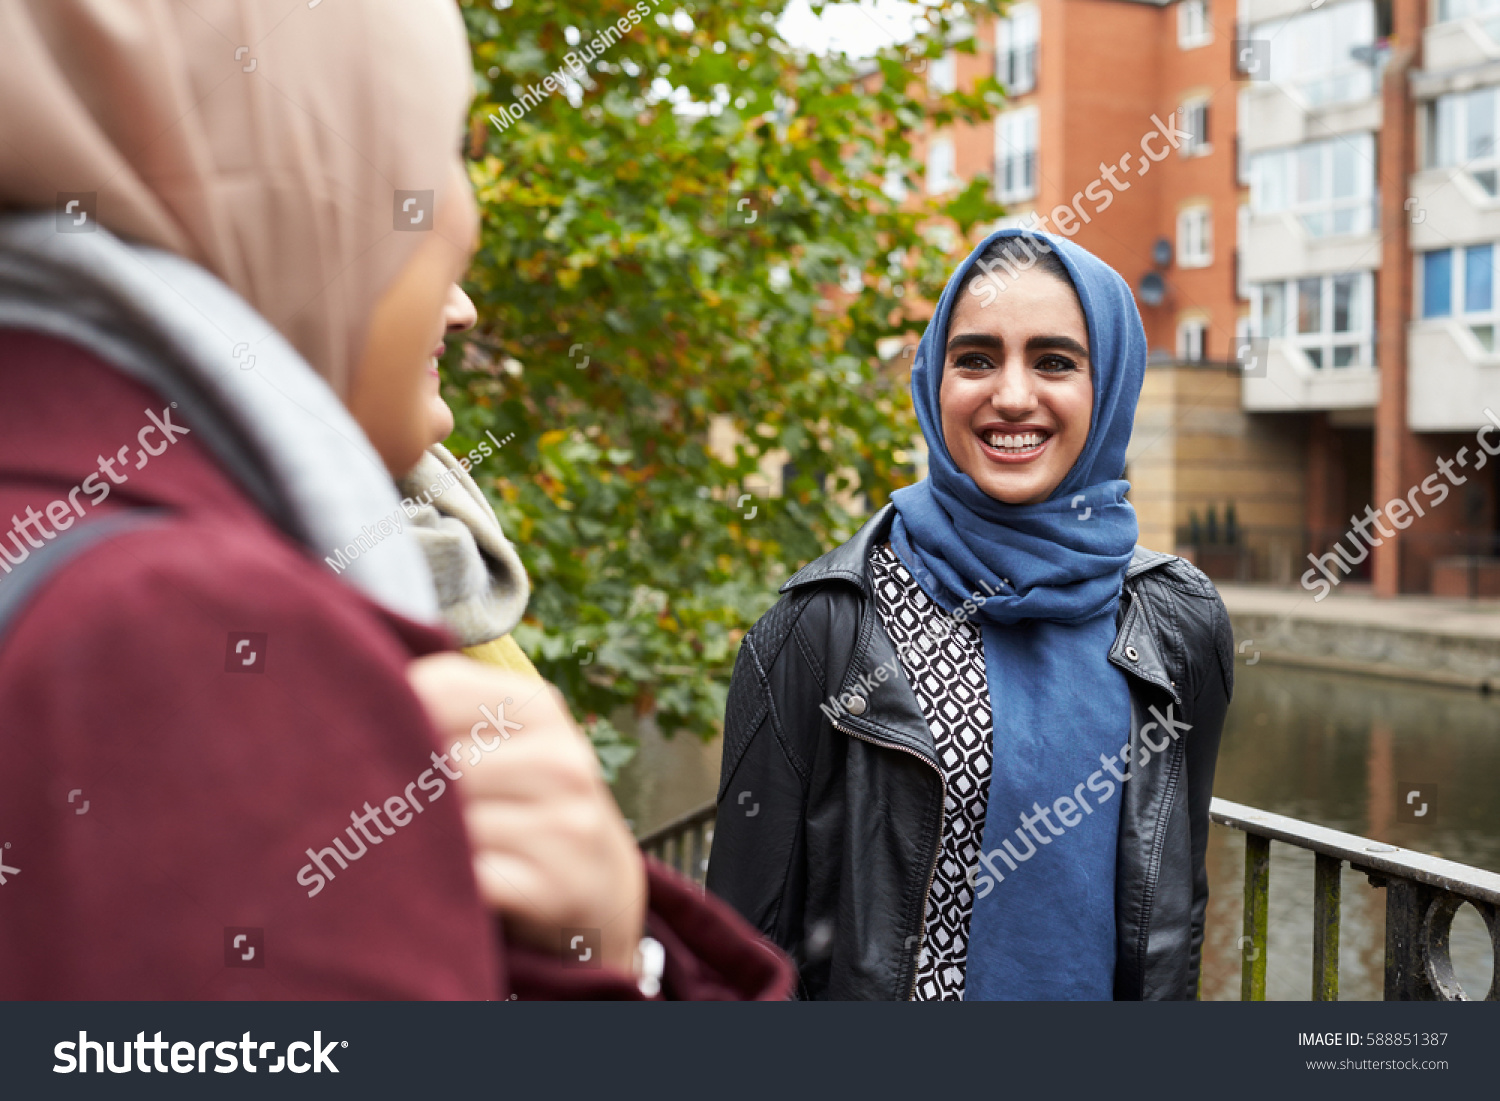 everest muslim women dating site Find your muslim life partner trusted site used by over 45 million  thousands of happy men and women have met their soul mates on muslima and have shared their.